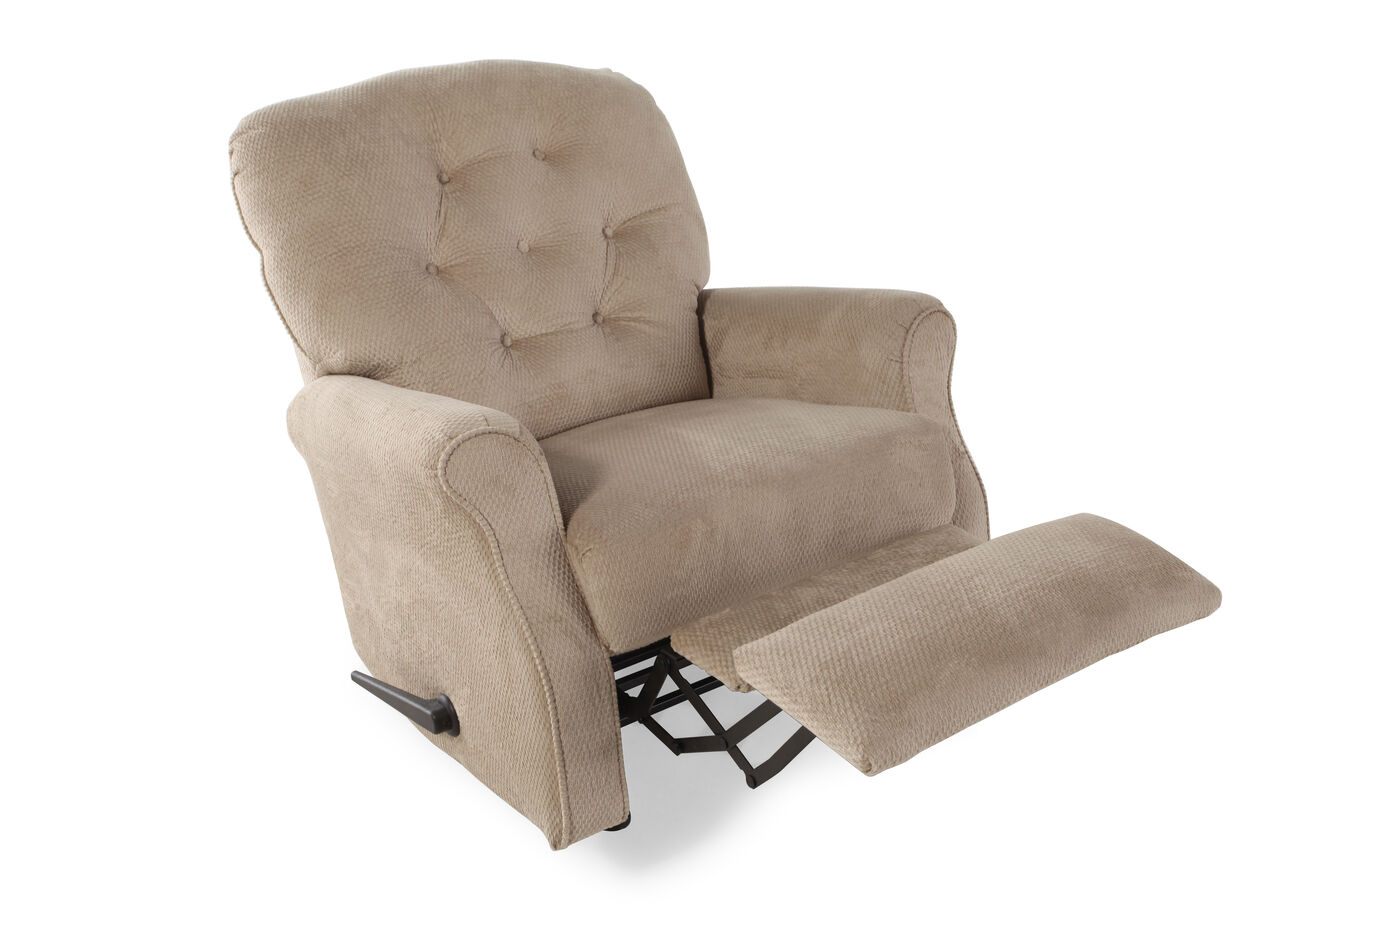 Lane Priscilla Rocker Recliner Mathis Brothers Furniture